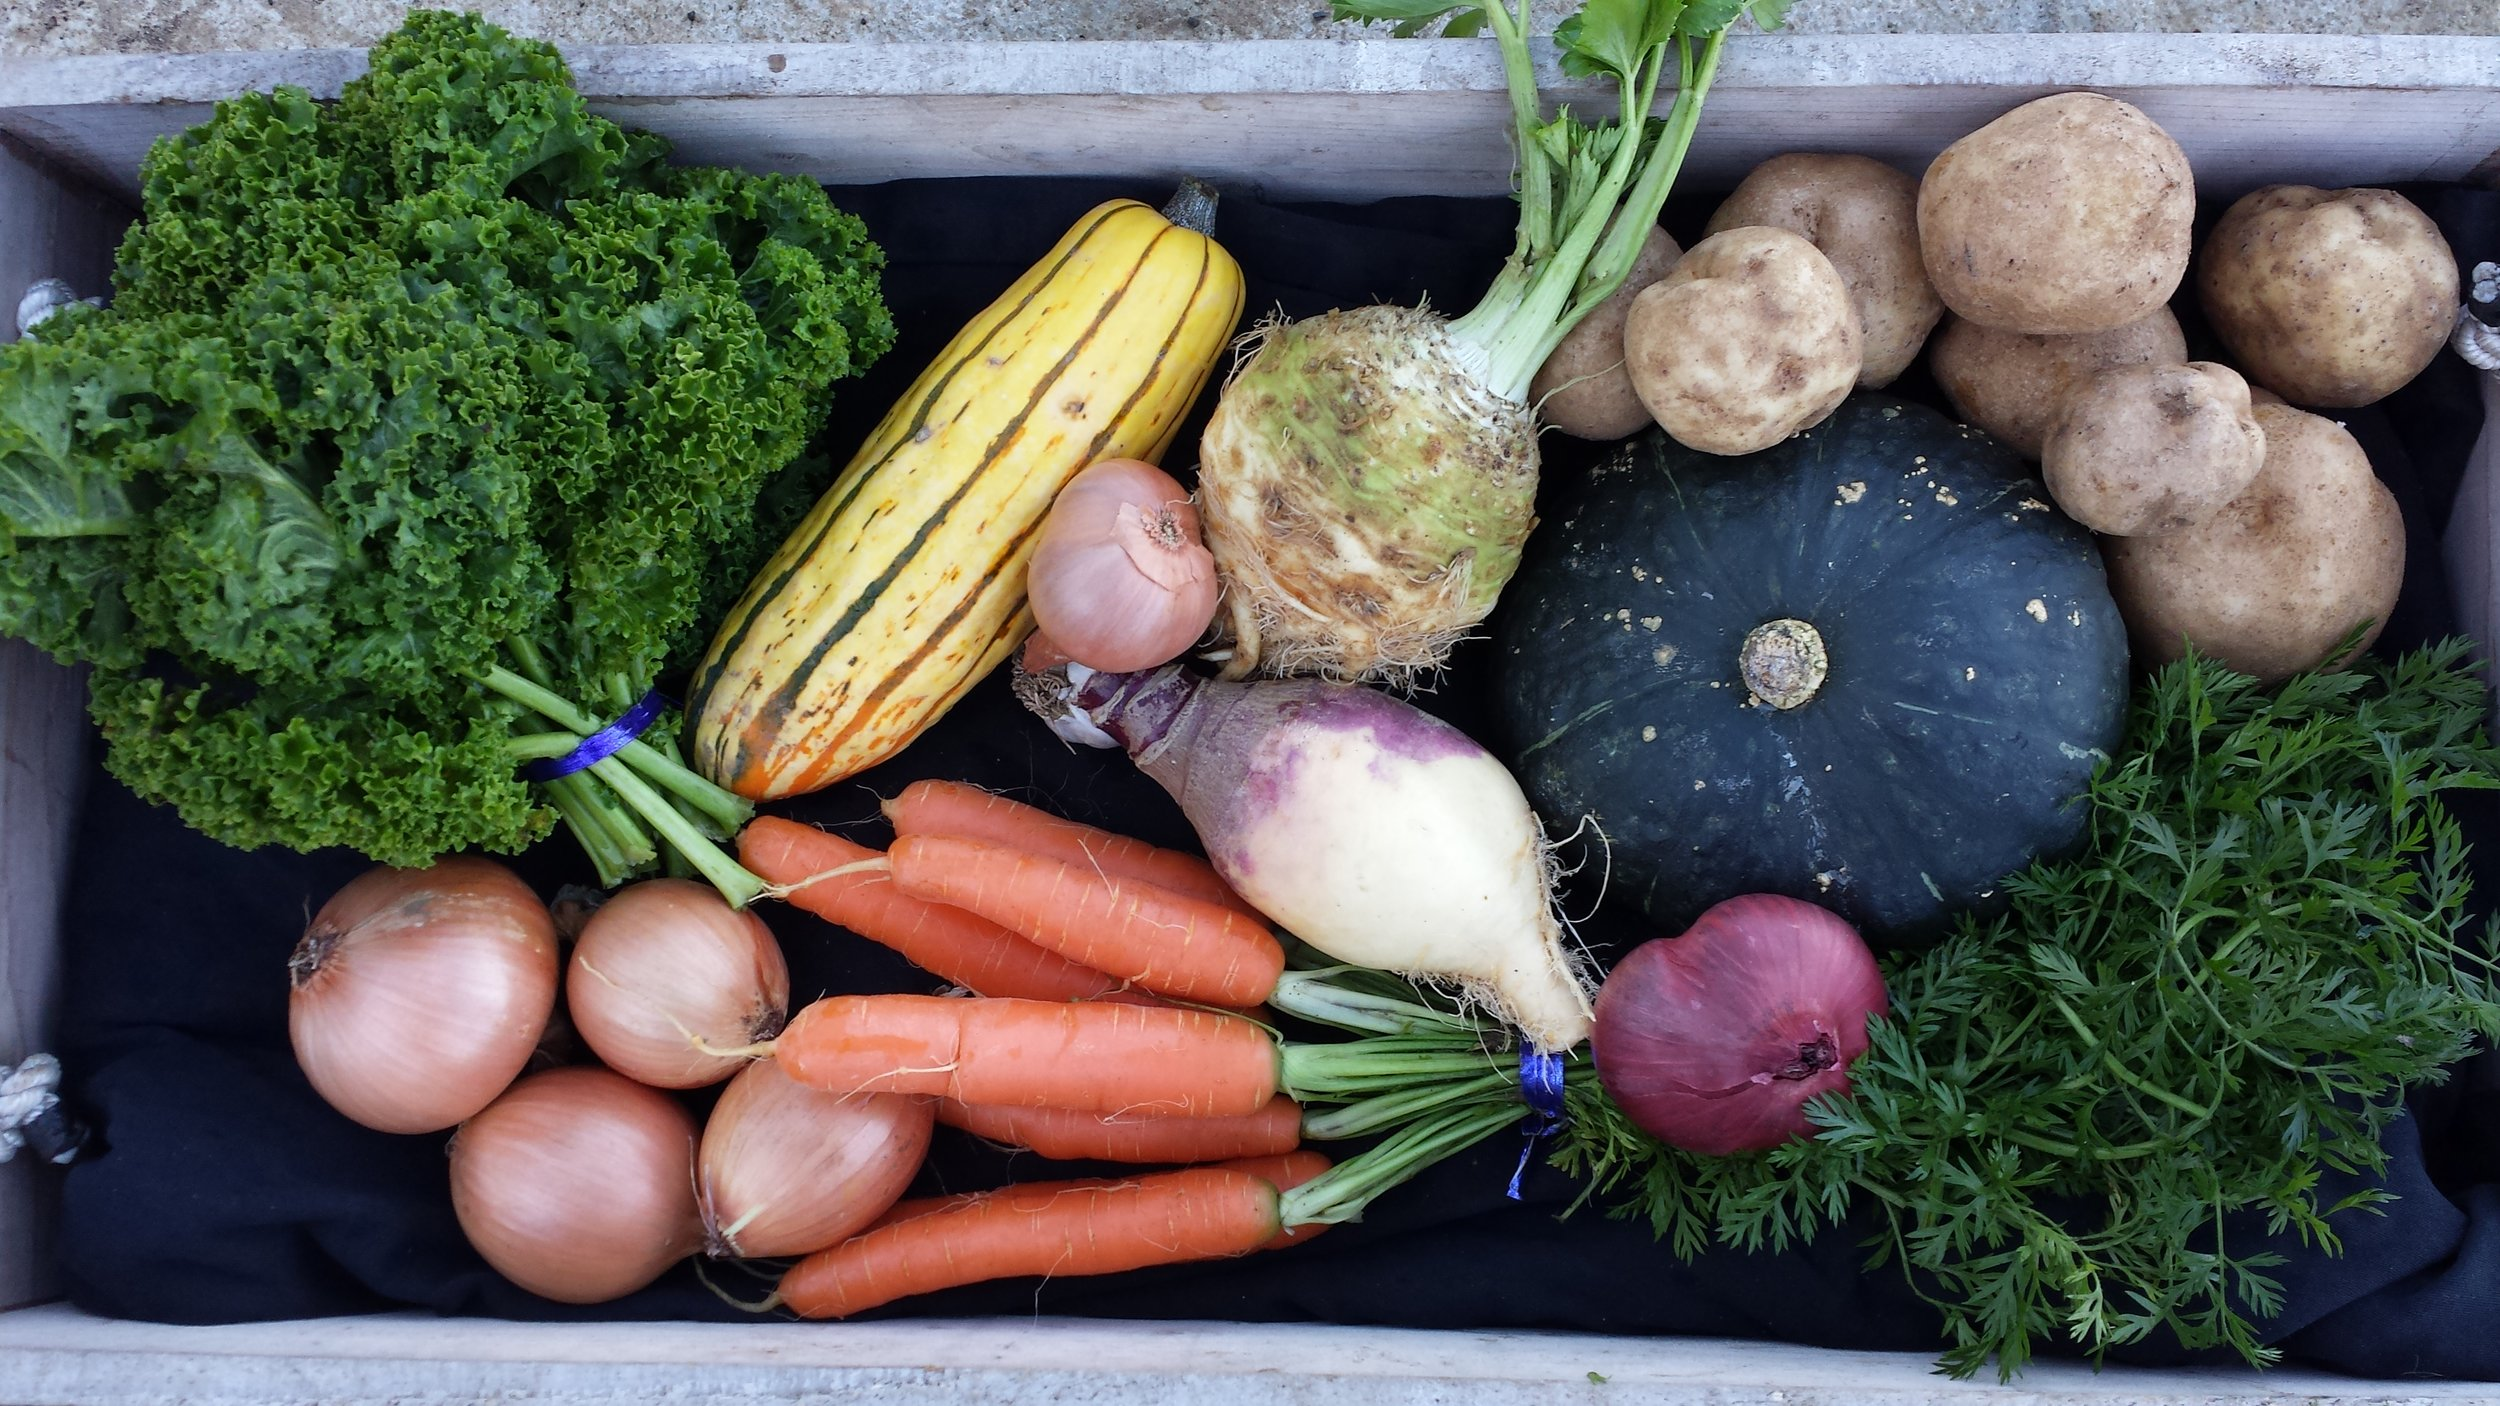 Root vegetables and leafy greens are among the Winter CSA options in Tompkins County. Image Source: Allen Neighborhood Center